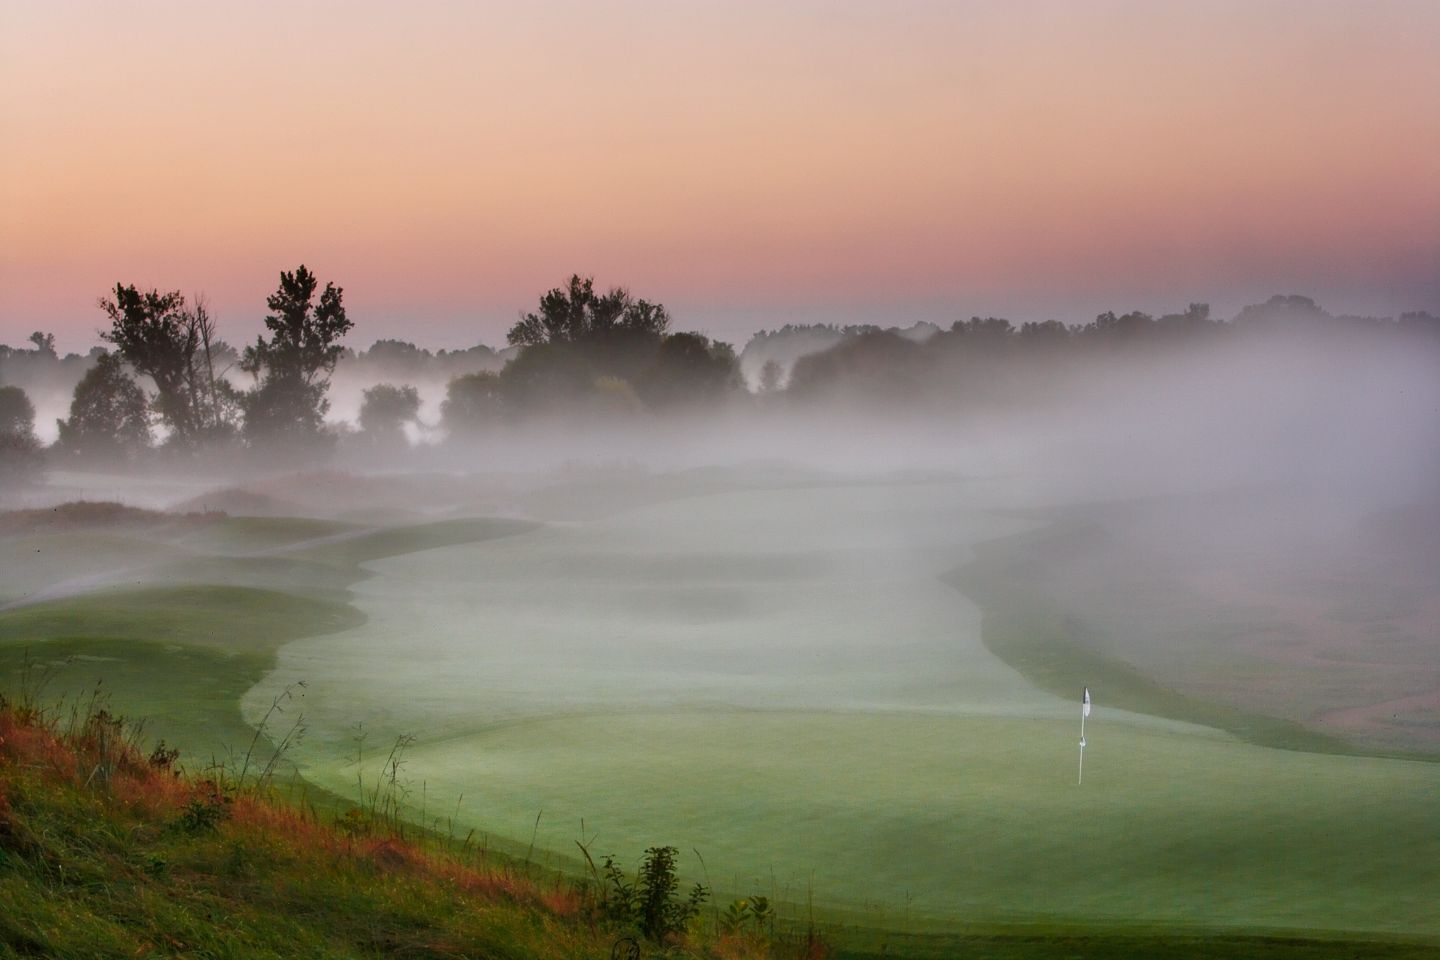 The green of hole 18 on The River Course with the fariway in the background and fog.